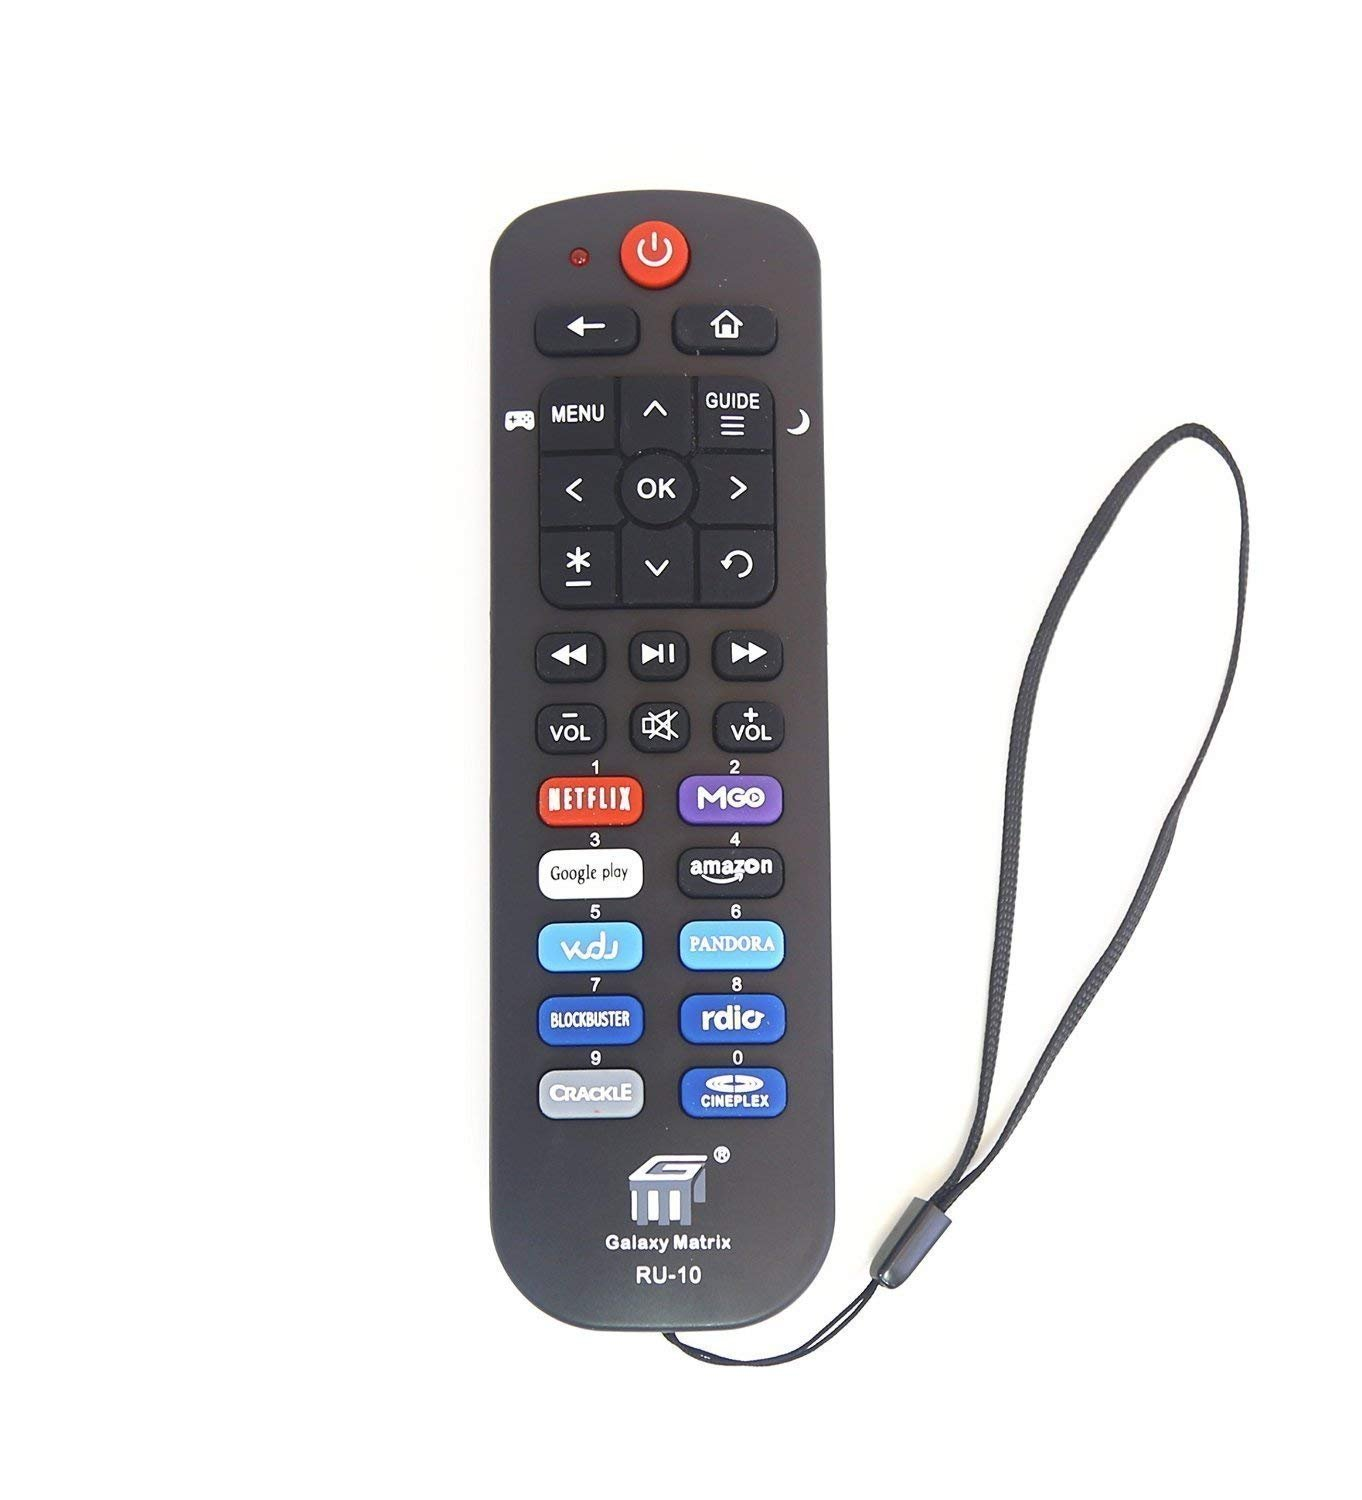 New RU10 Replacement Remote fit for TCL Roku TV RC280 with Netflix Google  Amazon Key 55UP120 32S4610R 50FS3750 32FS3700 32FS4610R 32S800 32S850